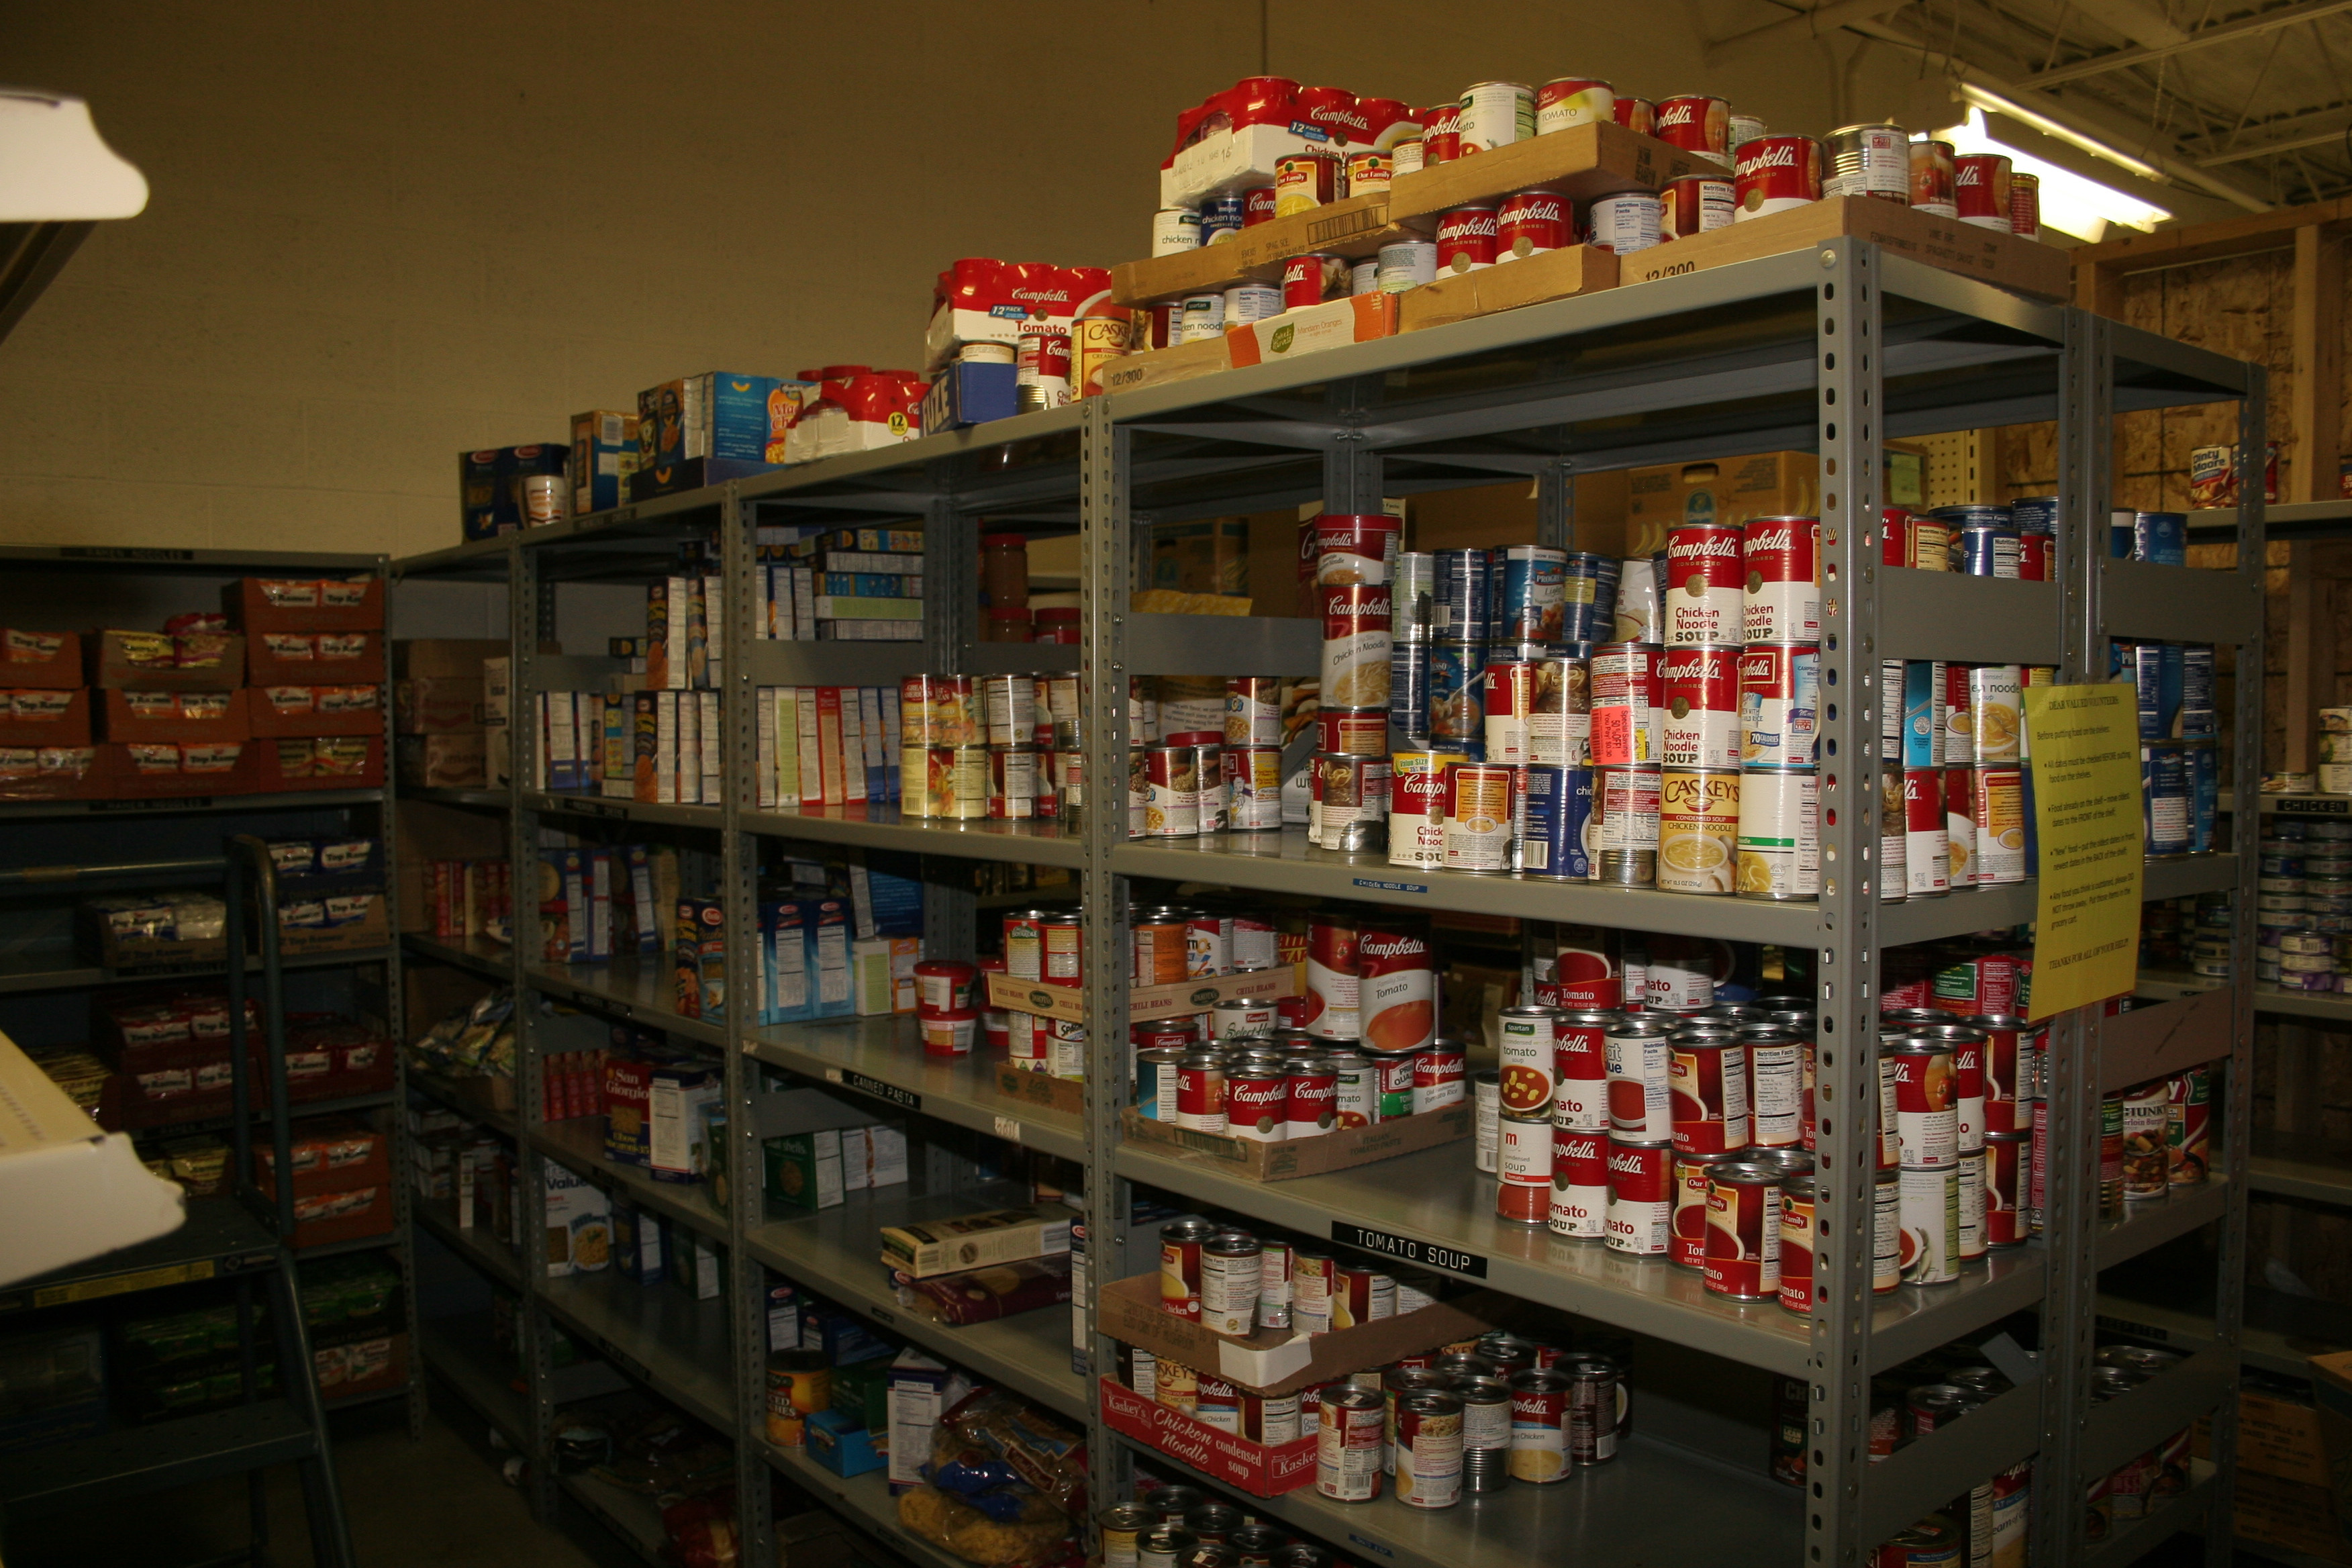 Best ideas about Church Food Pantry . Save or Pin Food Pantry Now.